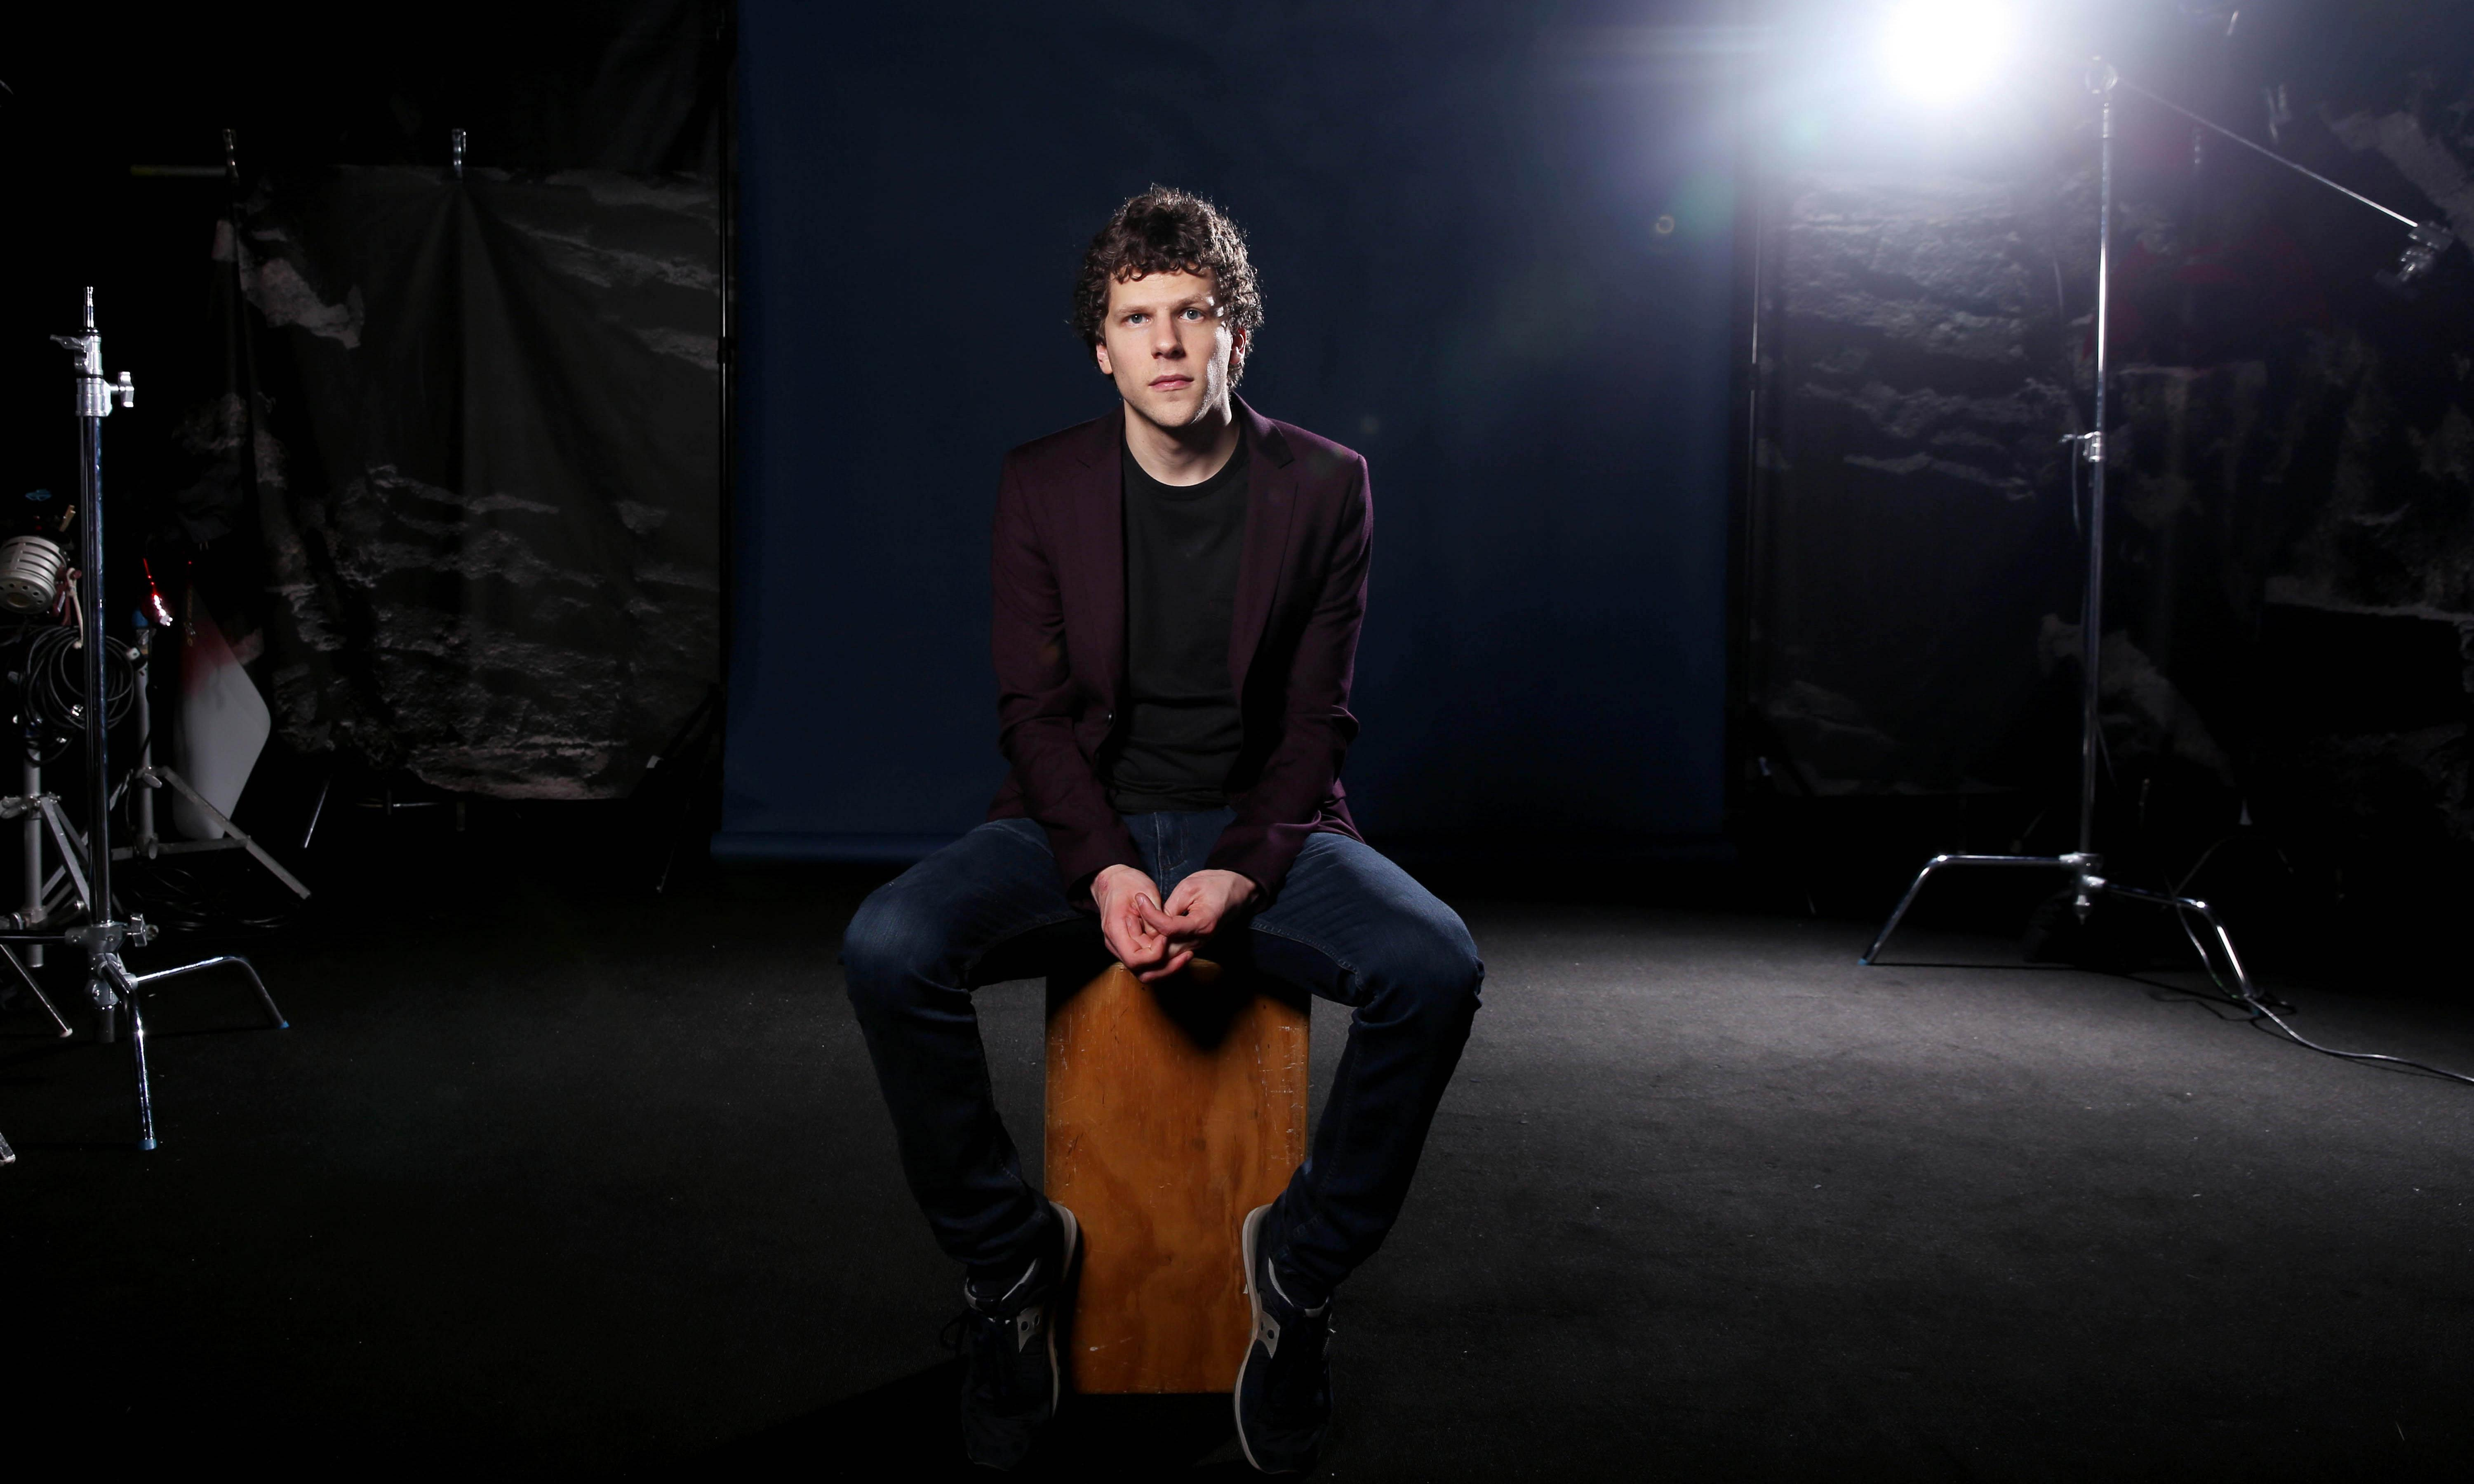 Jesse Eisenberg on Woody Allen, anxiety and fatherhood: 'Now I get to worry about something visible'